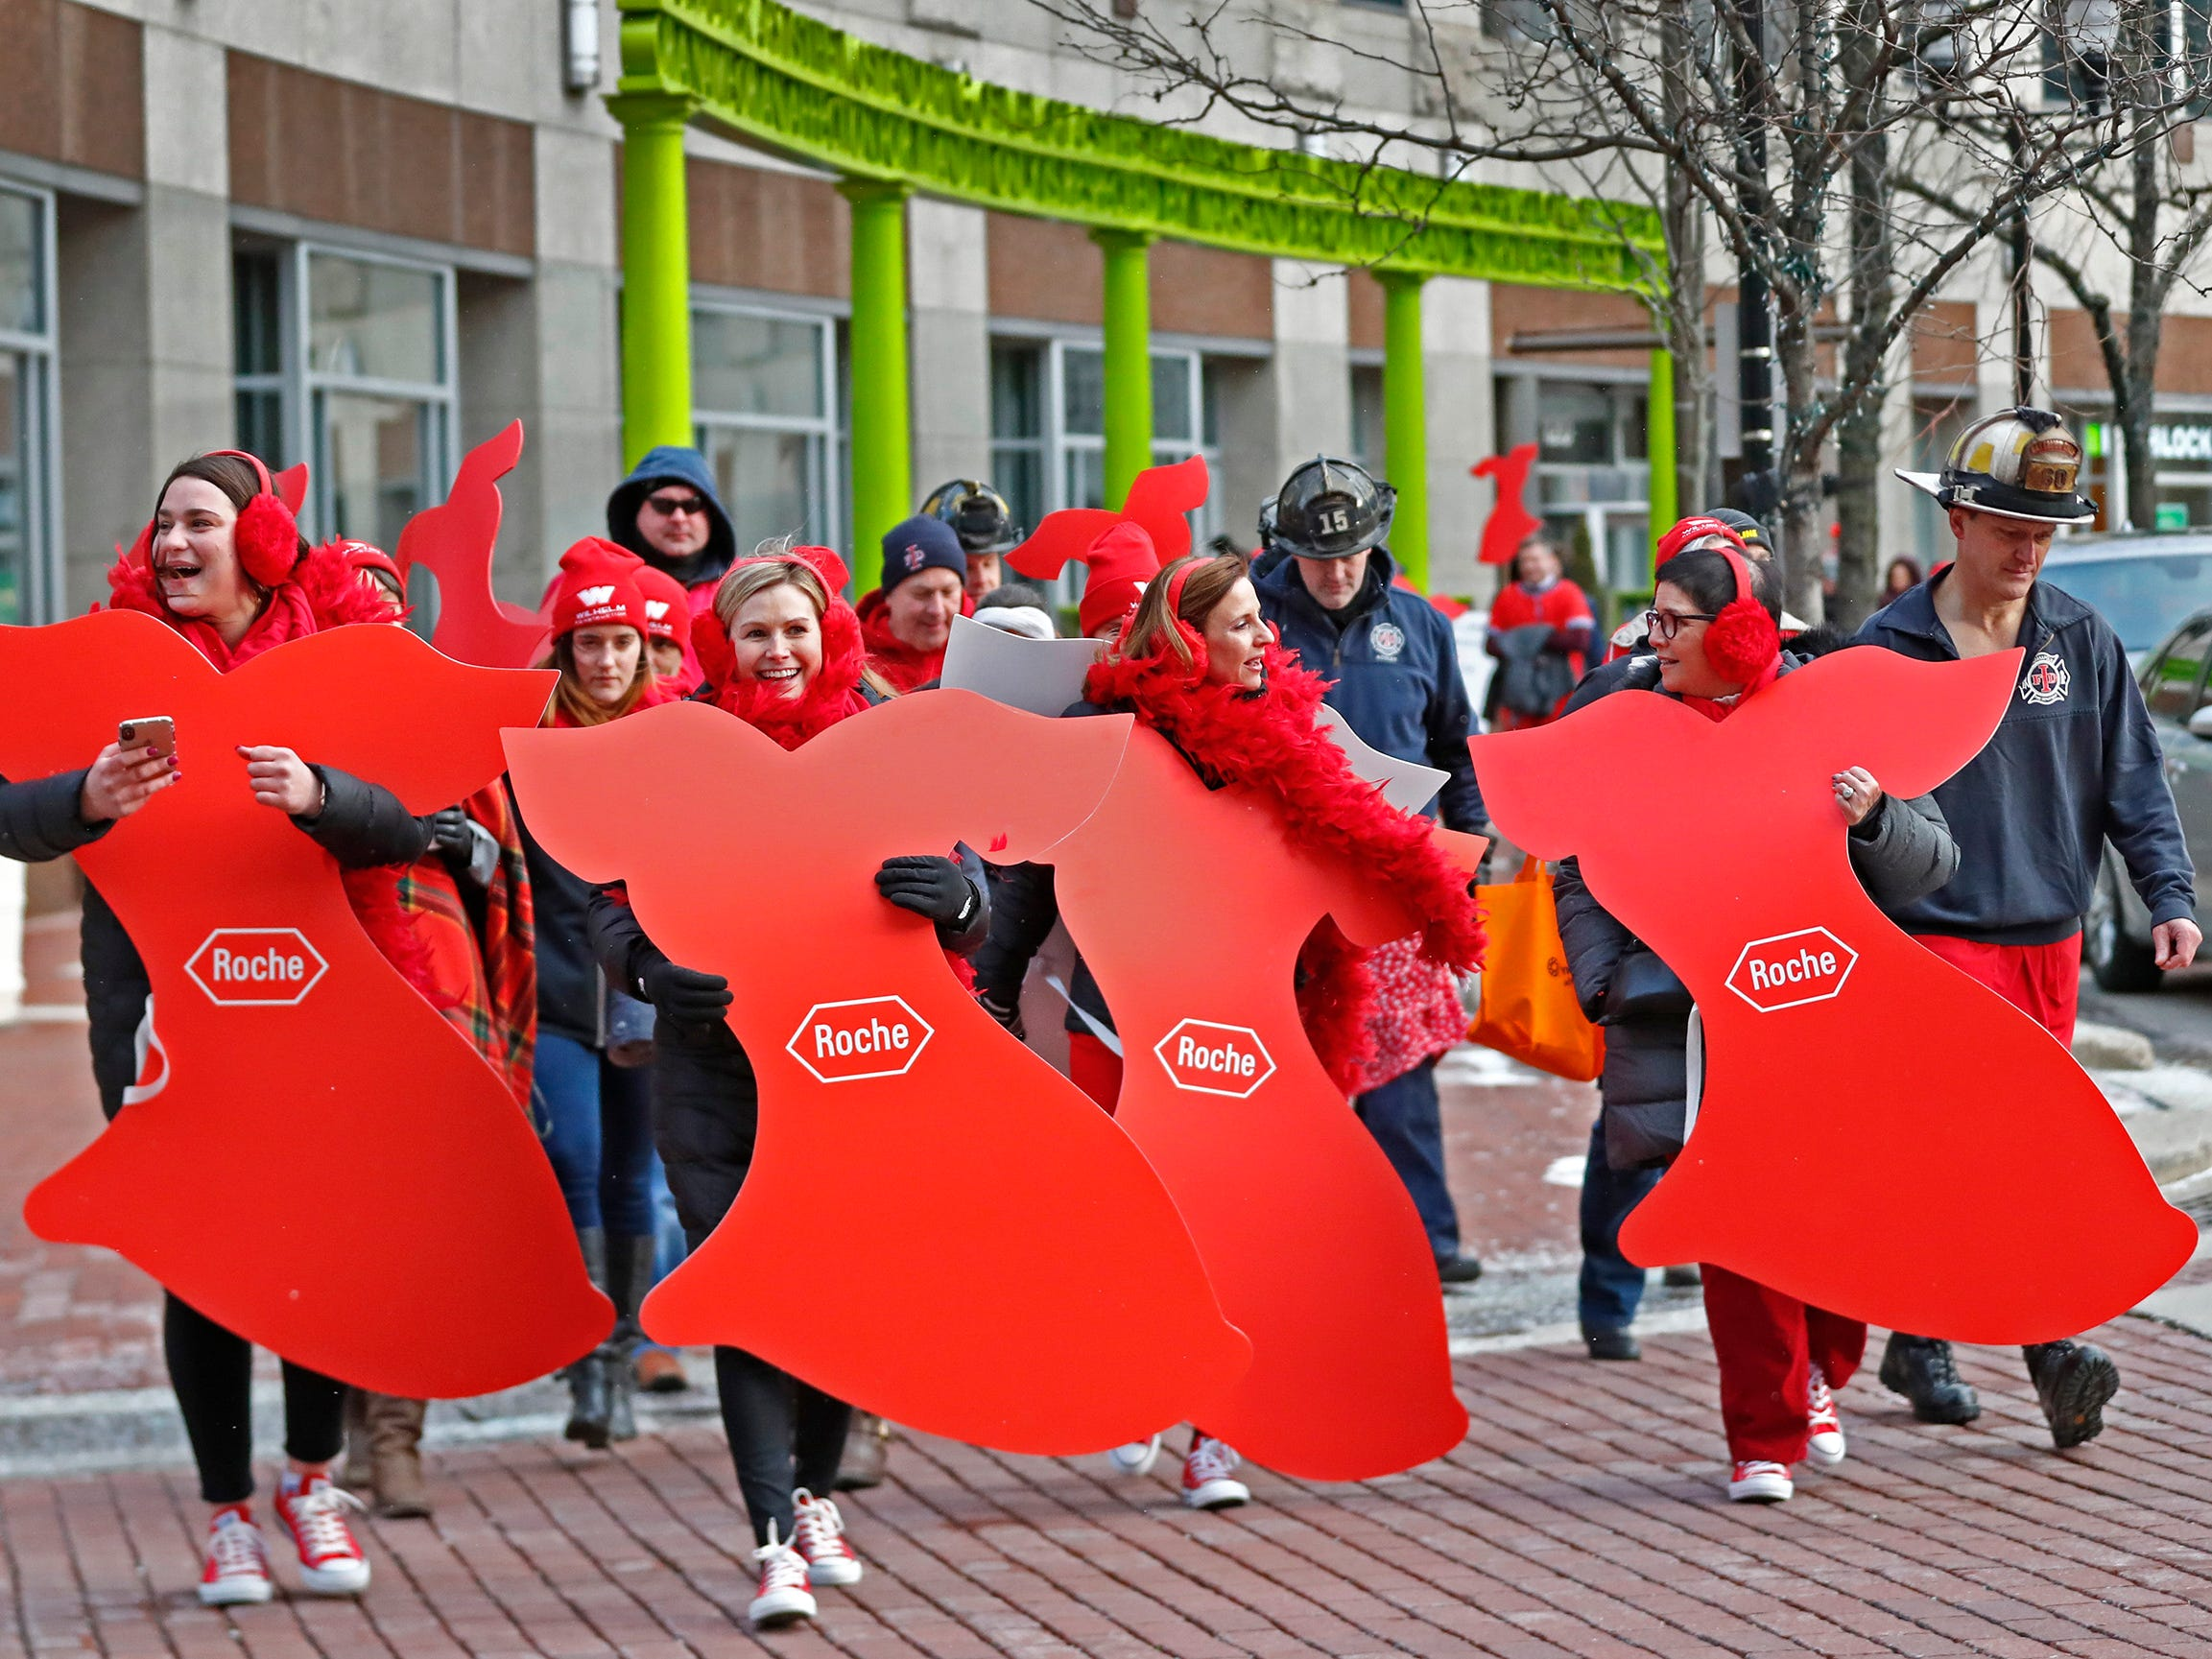 People wear red as they walk around Monument Circle for the Red Dress Dash, Friday, Feb. 8, 2019.  The American Heart Association put on the seventh annual event to support women's heart health.  The event raises awareness for the American Heart Association's Go Red For Women movement.  Heart disease is the leading cause of death among women.